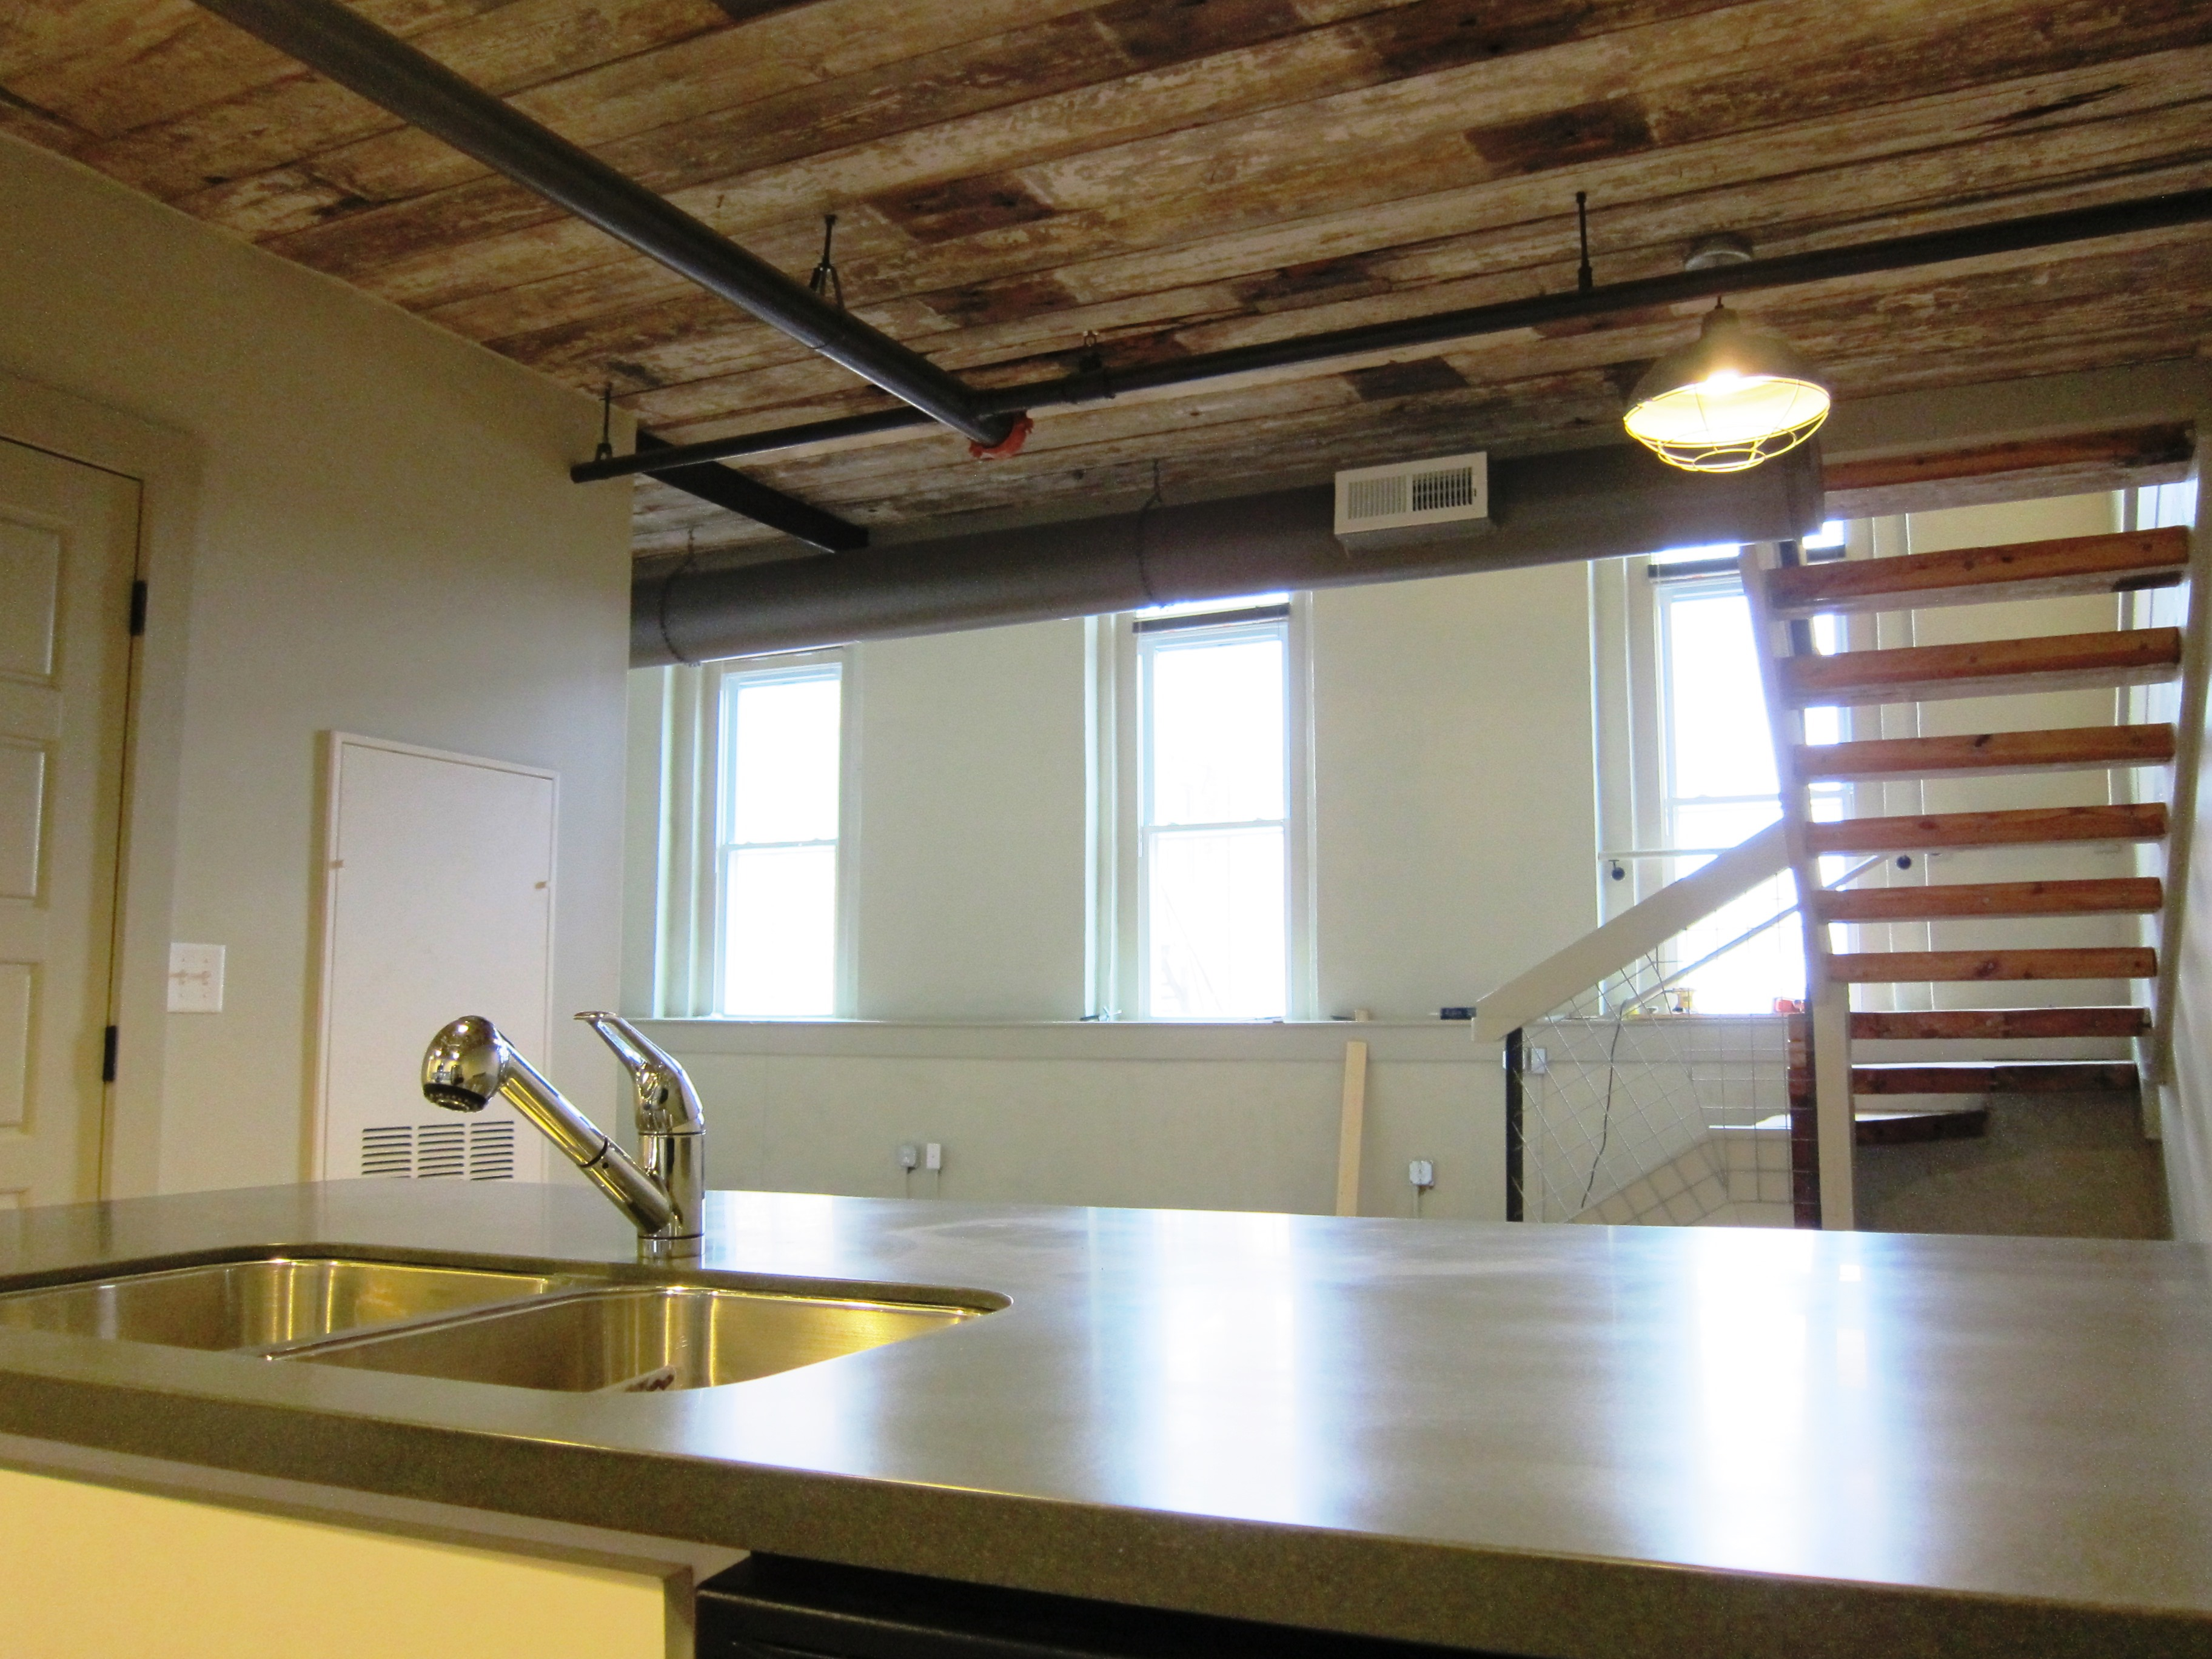 Nash Street Lofts in Wilson was redeveloped by CommunitySmith